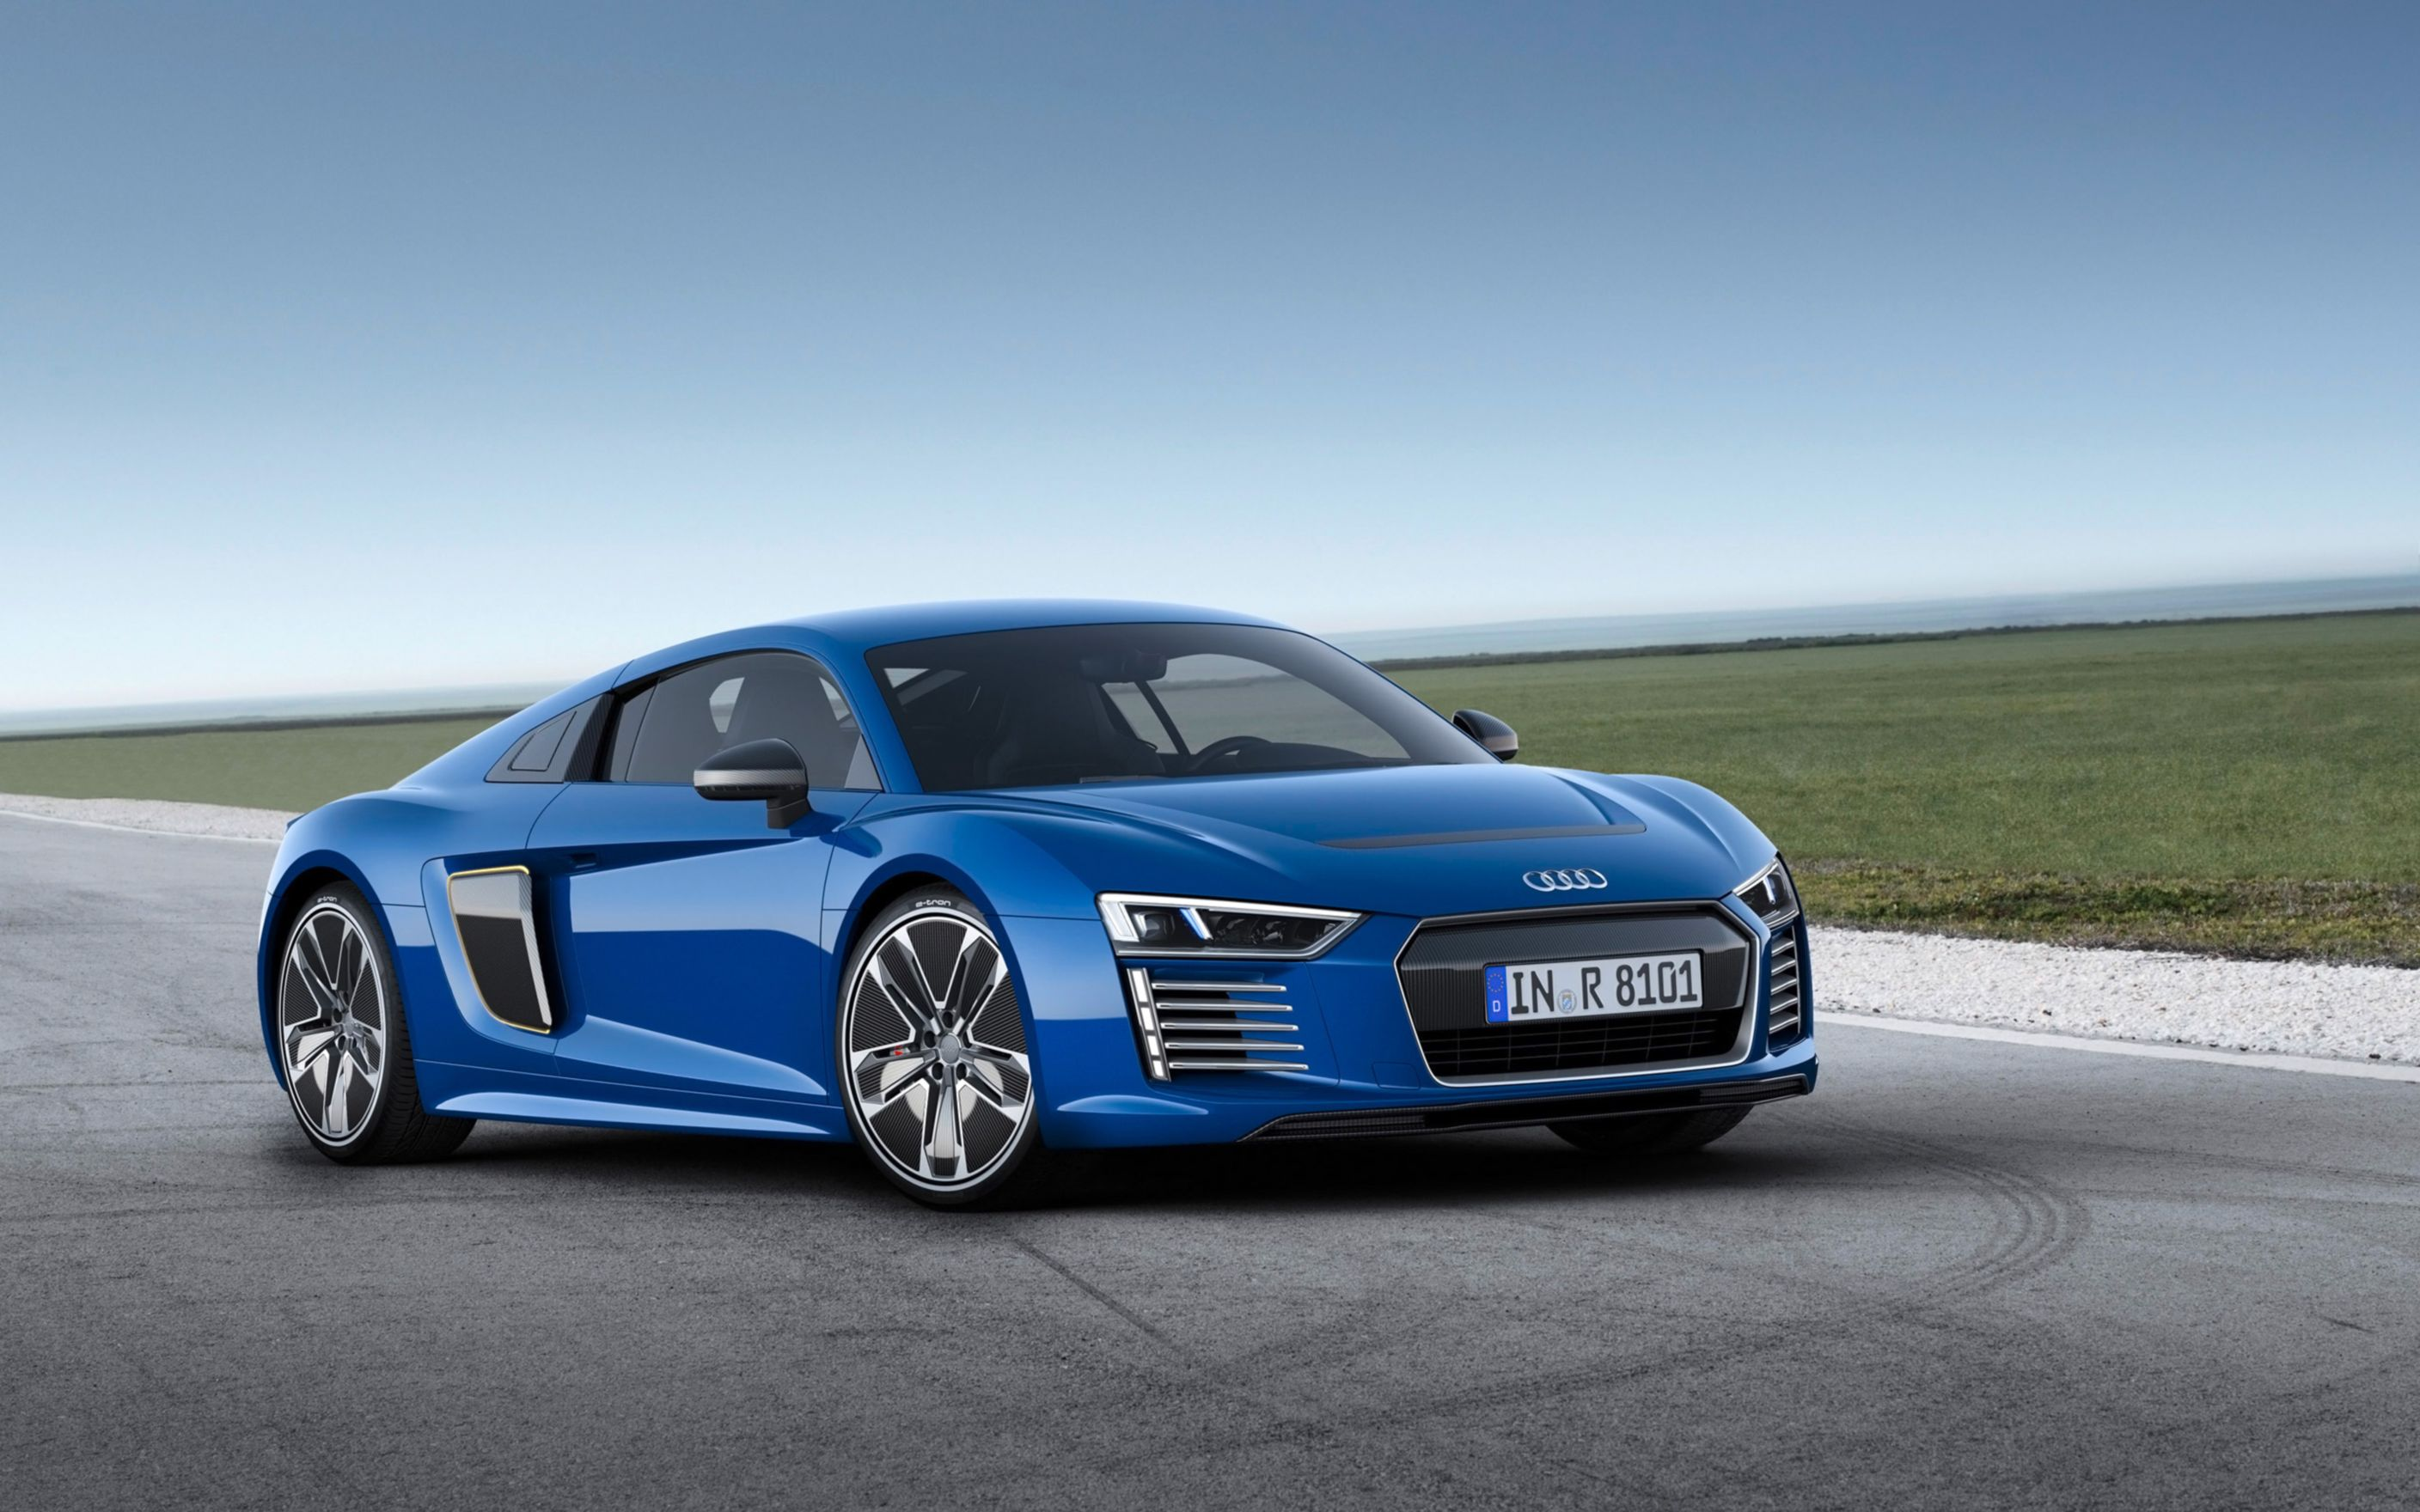 Download free HD 2016 Audi R8 E Tron Wide Wallpaper, image